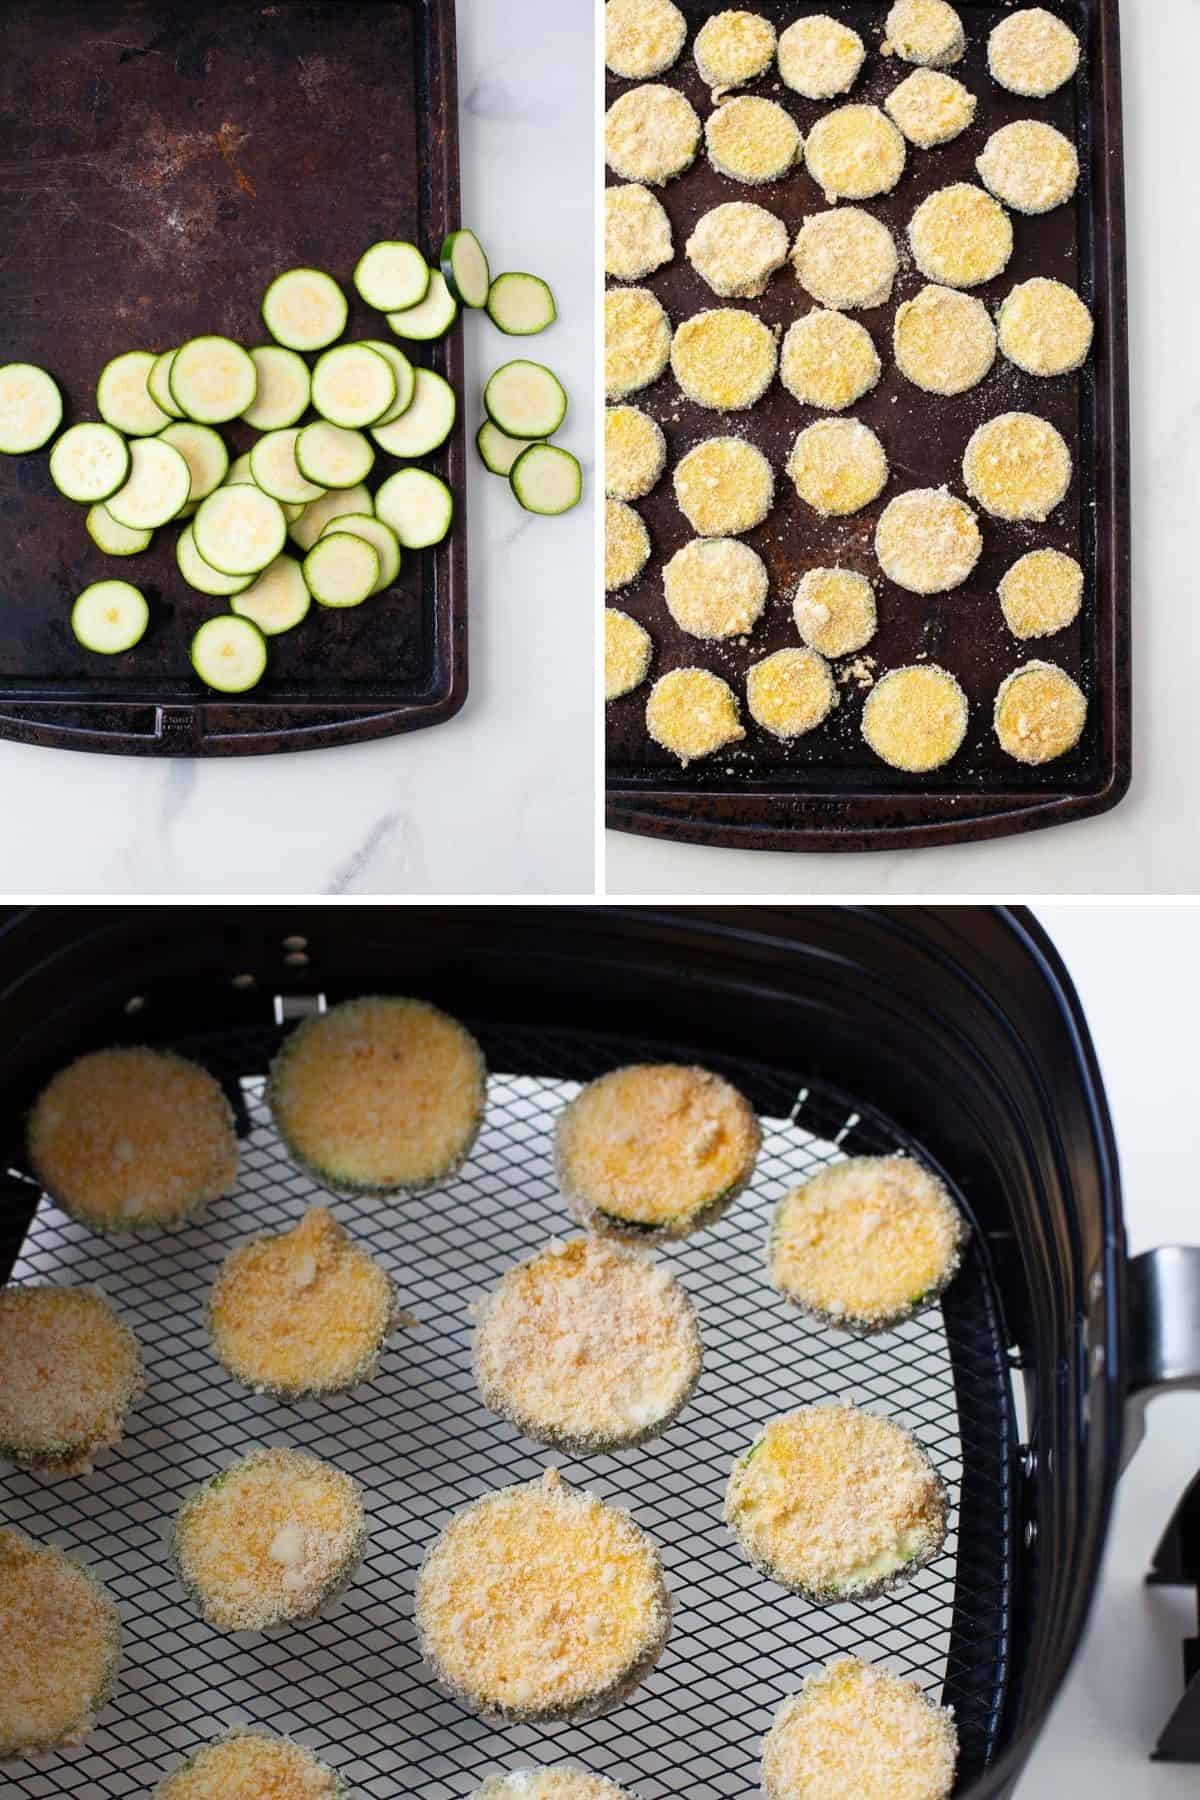 photos showing slices of zucchini on baking sheet with homemade breading being placed in air fryer